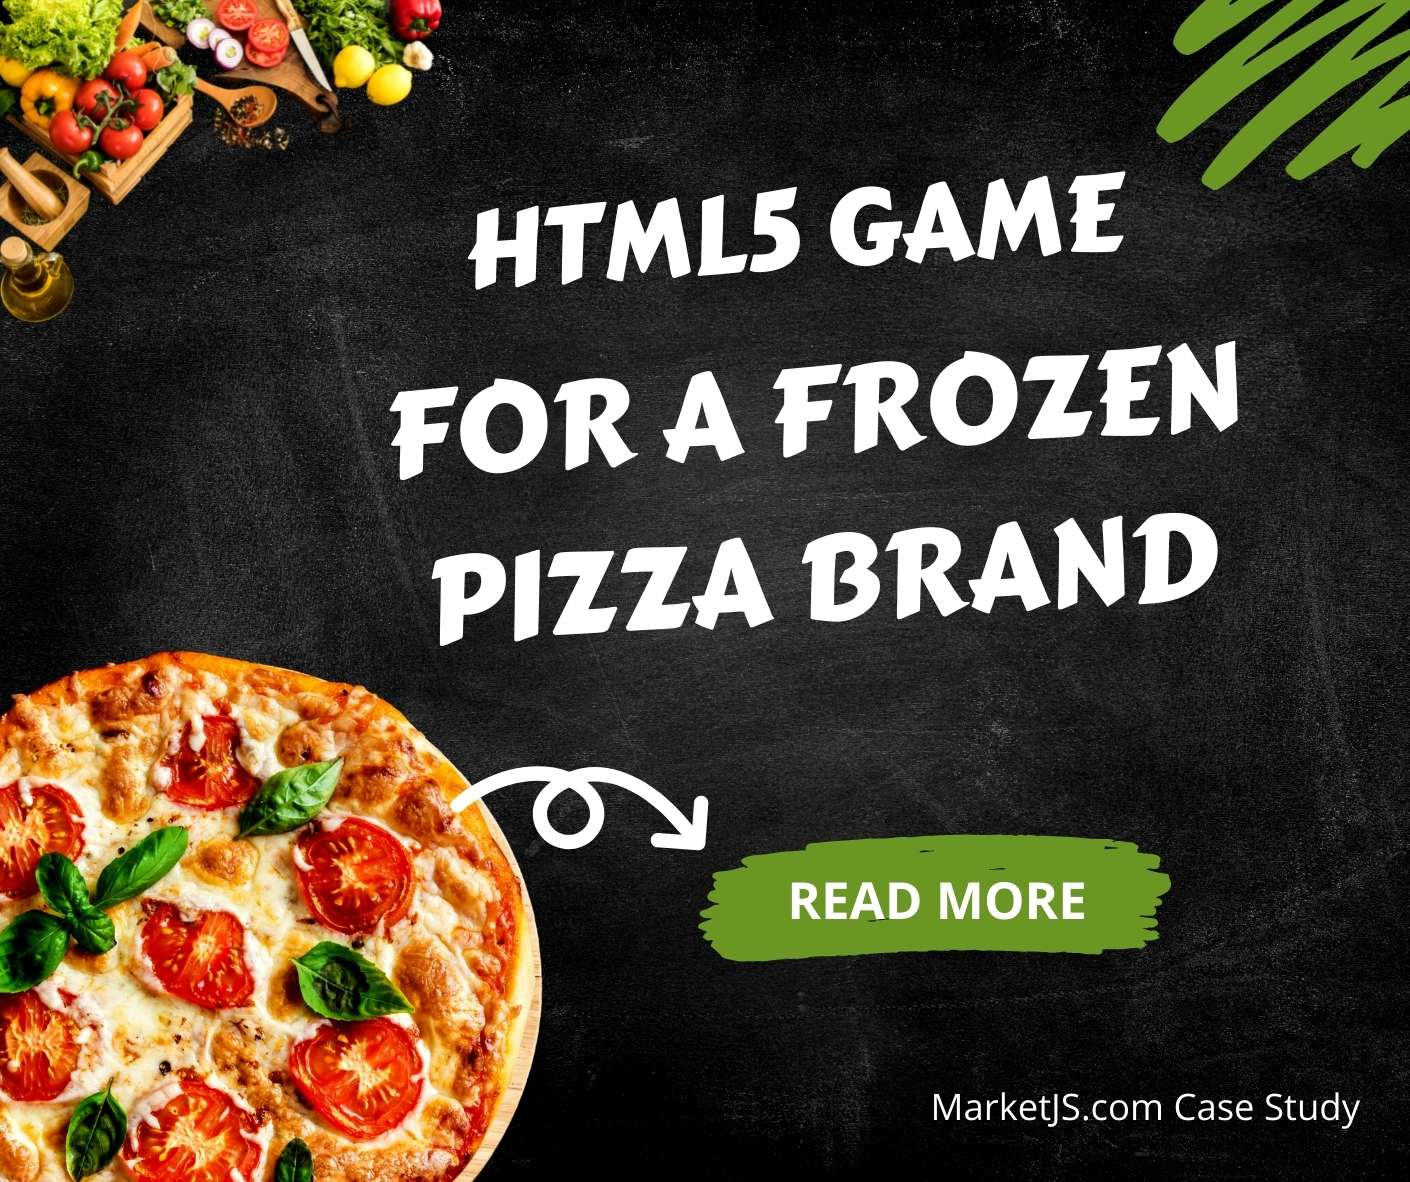 HTML5 Game For Frozen Pizza